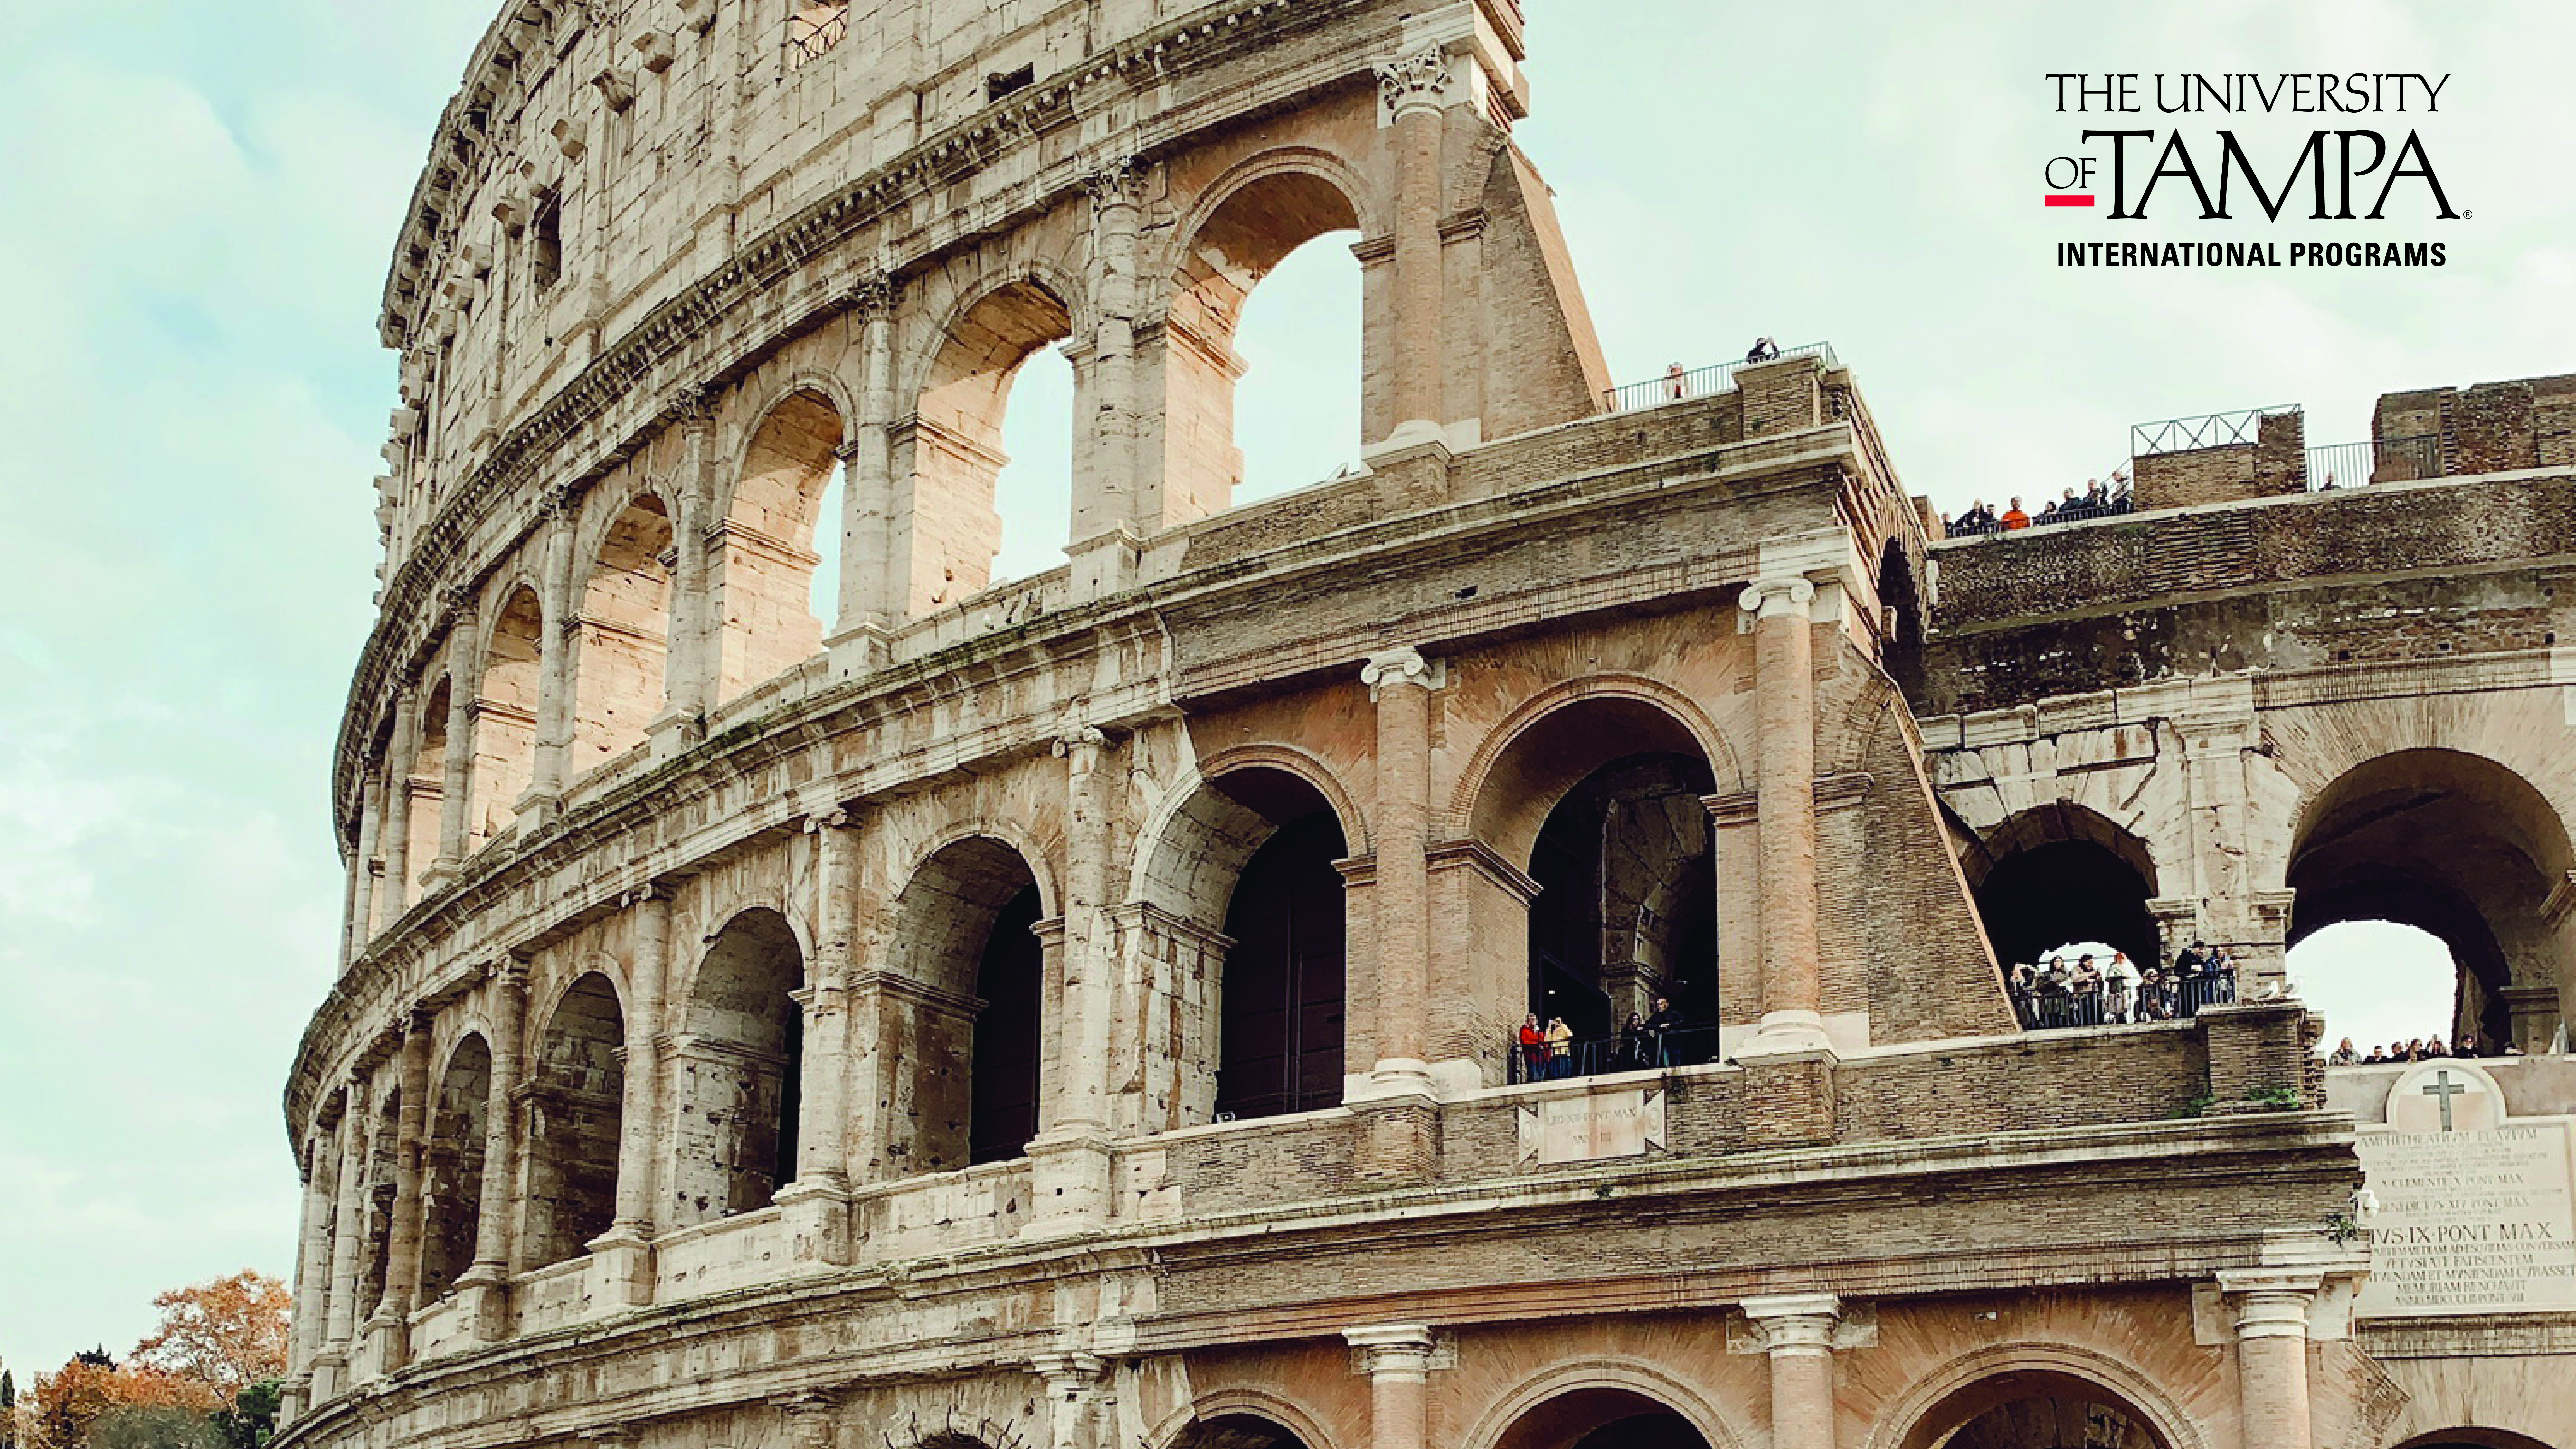 Outside the Roman Colosseum in Italy (Photographer: Natalie Jumaoas '21)